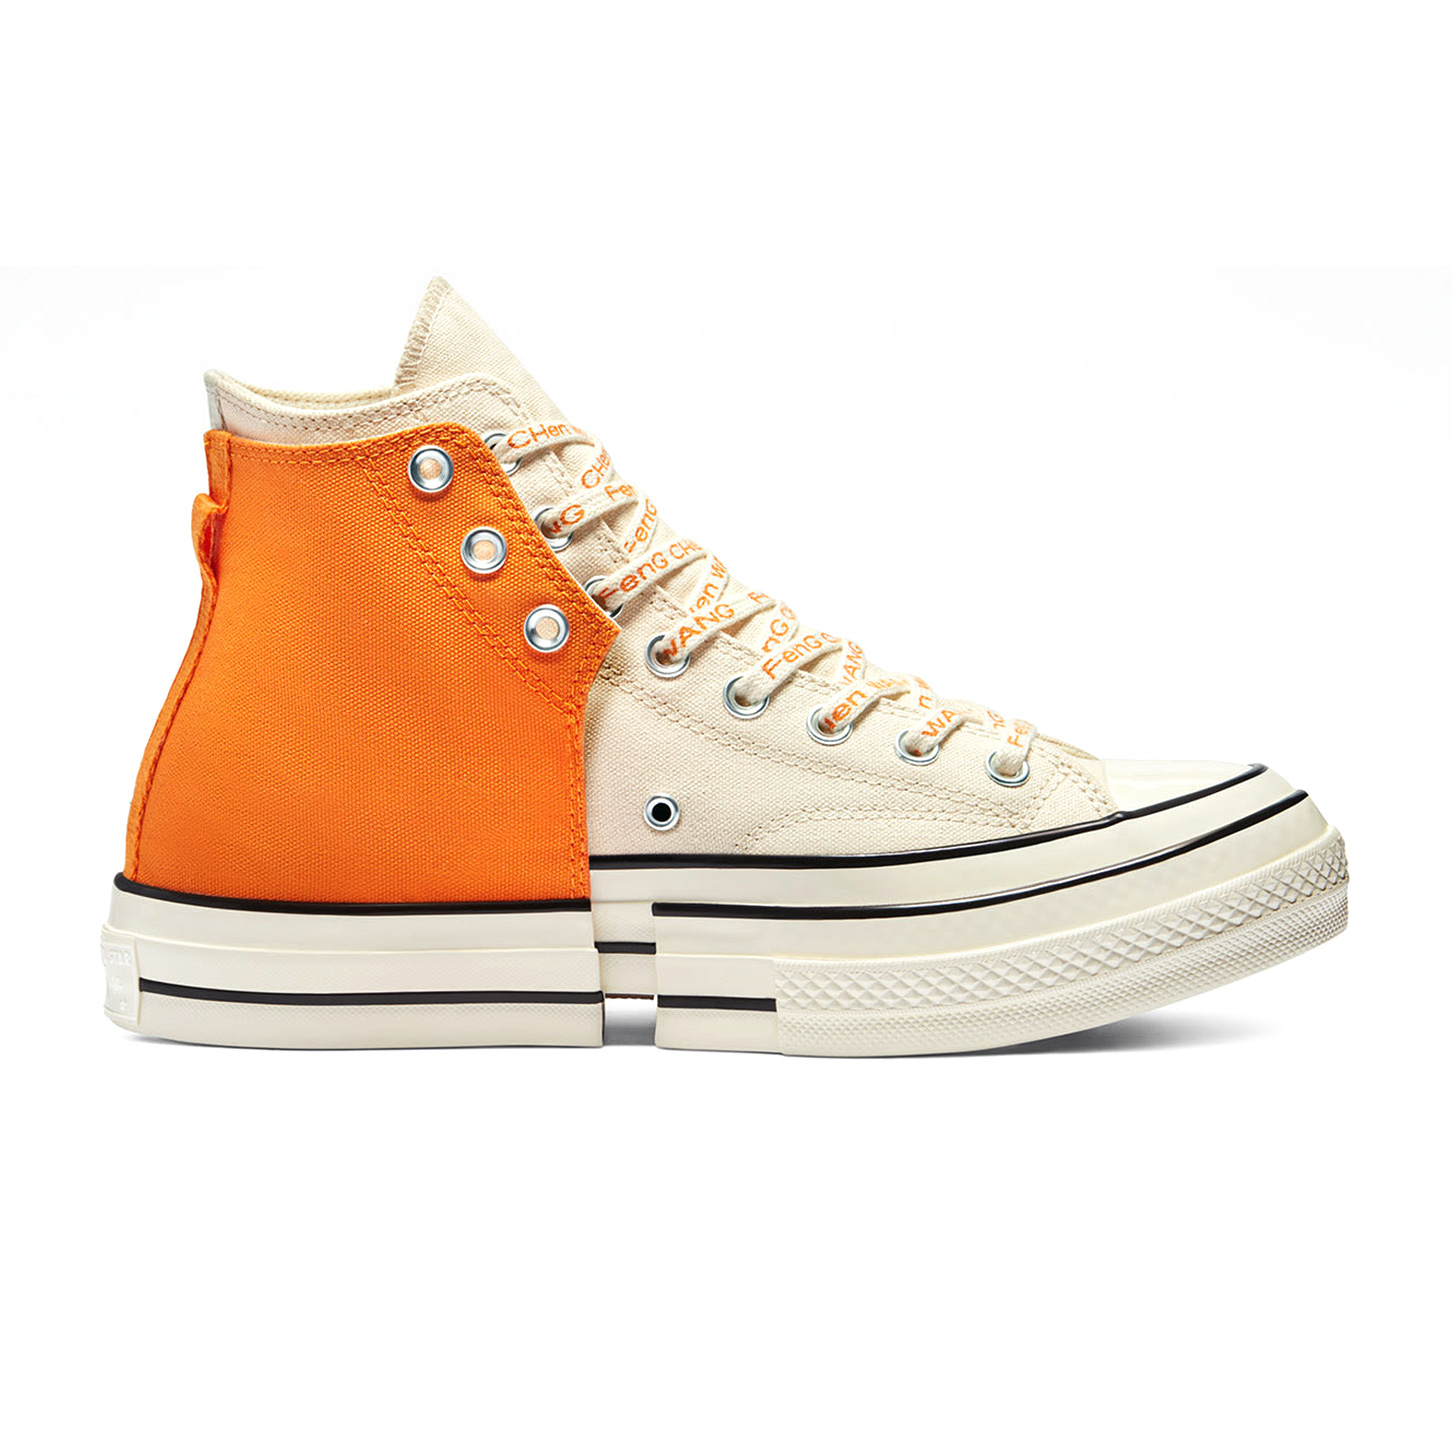 Converse Chuck Taylor All-Star 2IN1 70s Hi Feng Chen Wang Orange Ivory